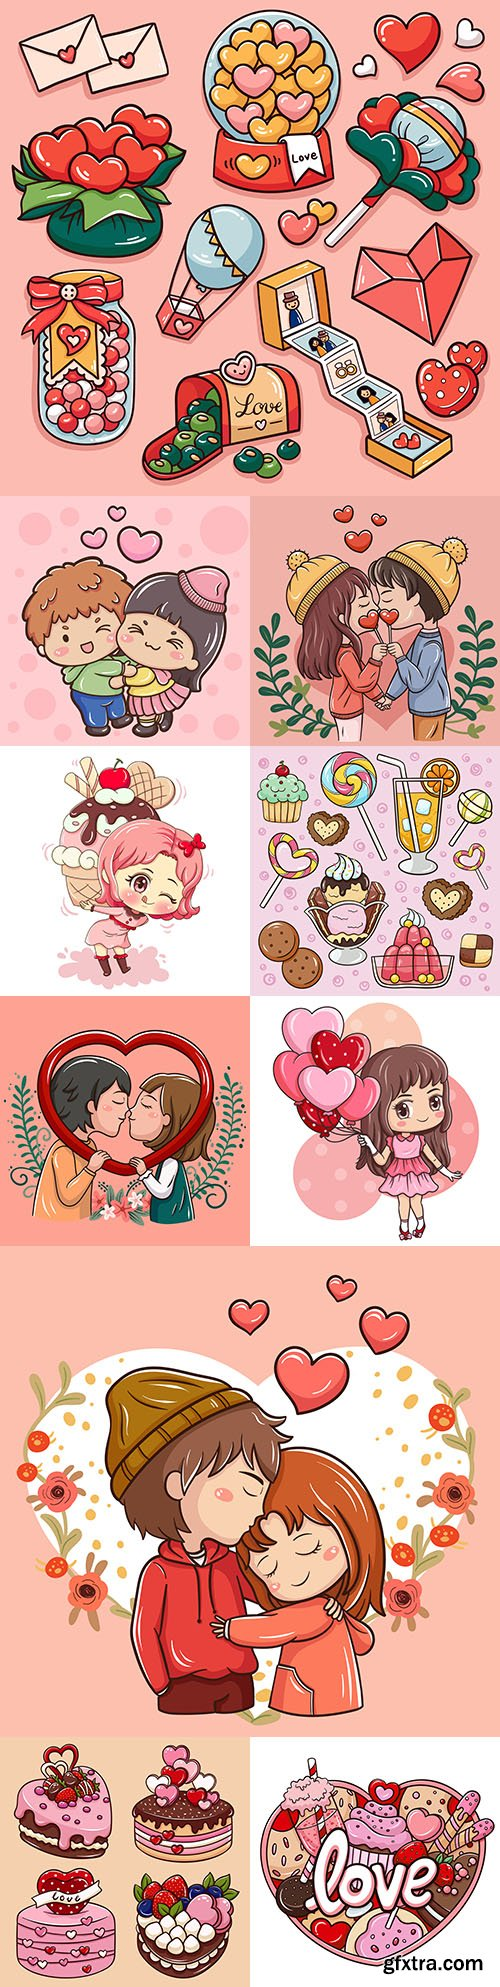 Valentine's Day illustration cartoon elements and gifts